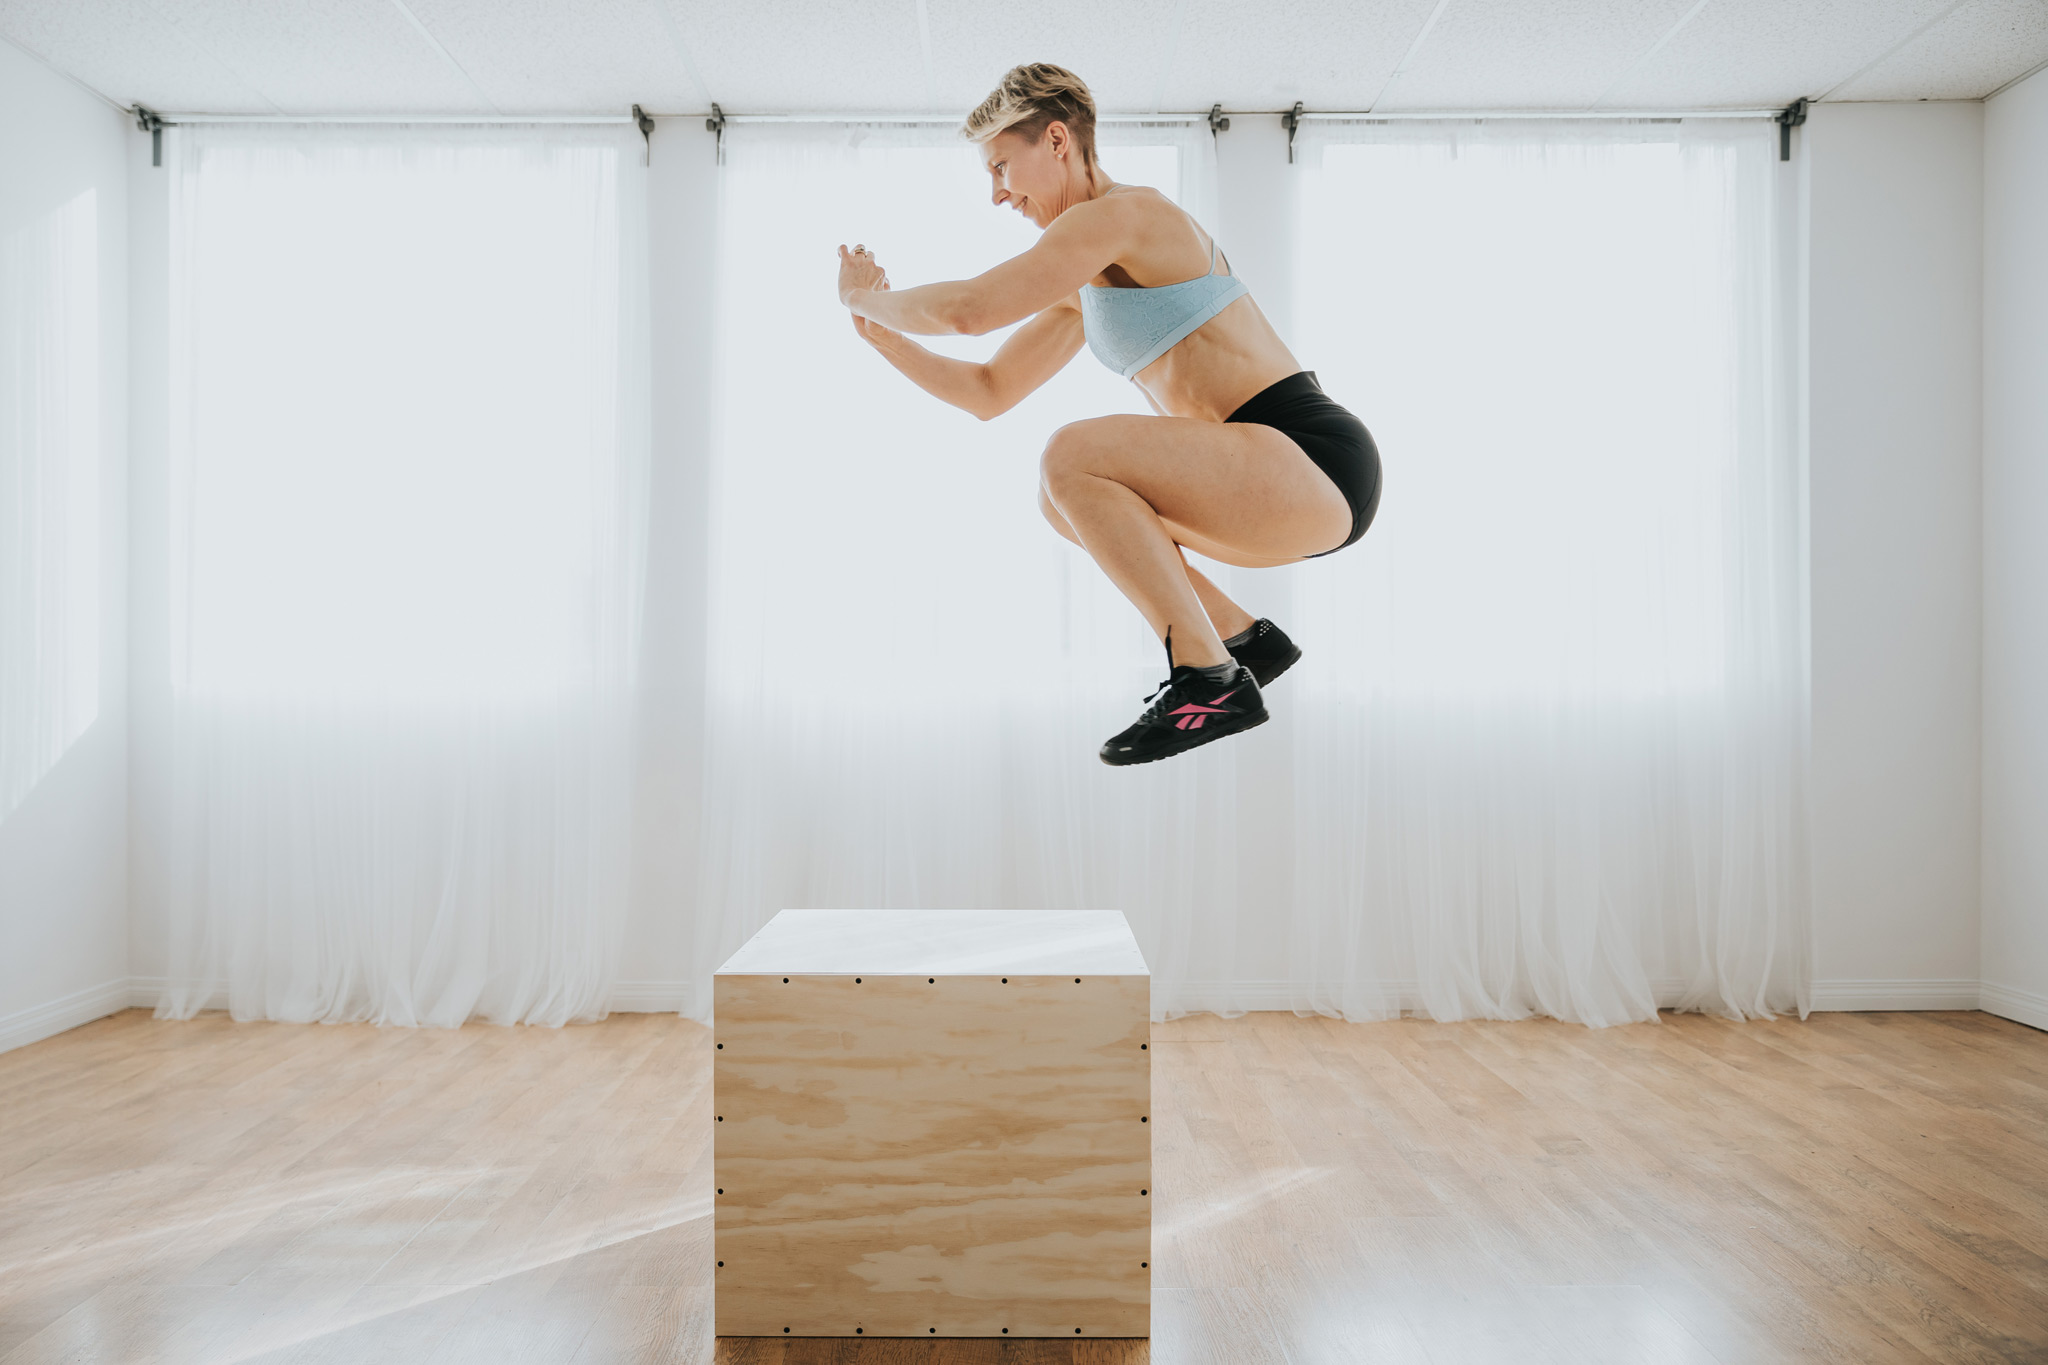 woman doing box jump workout